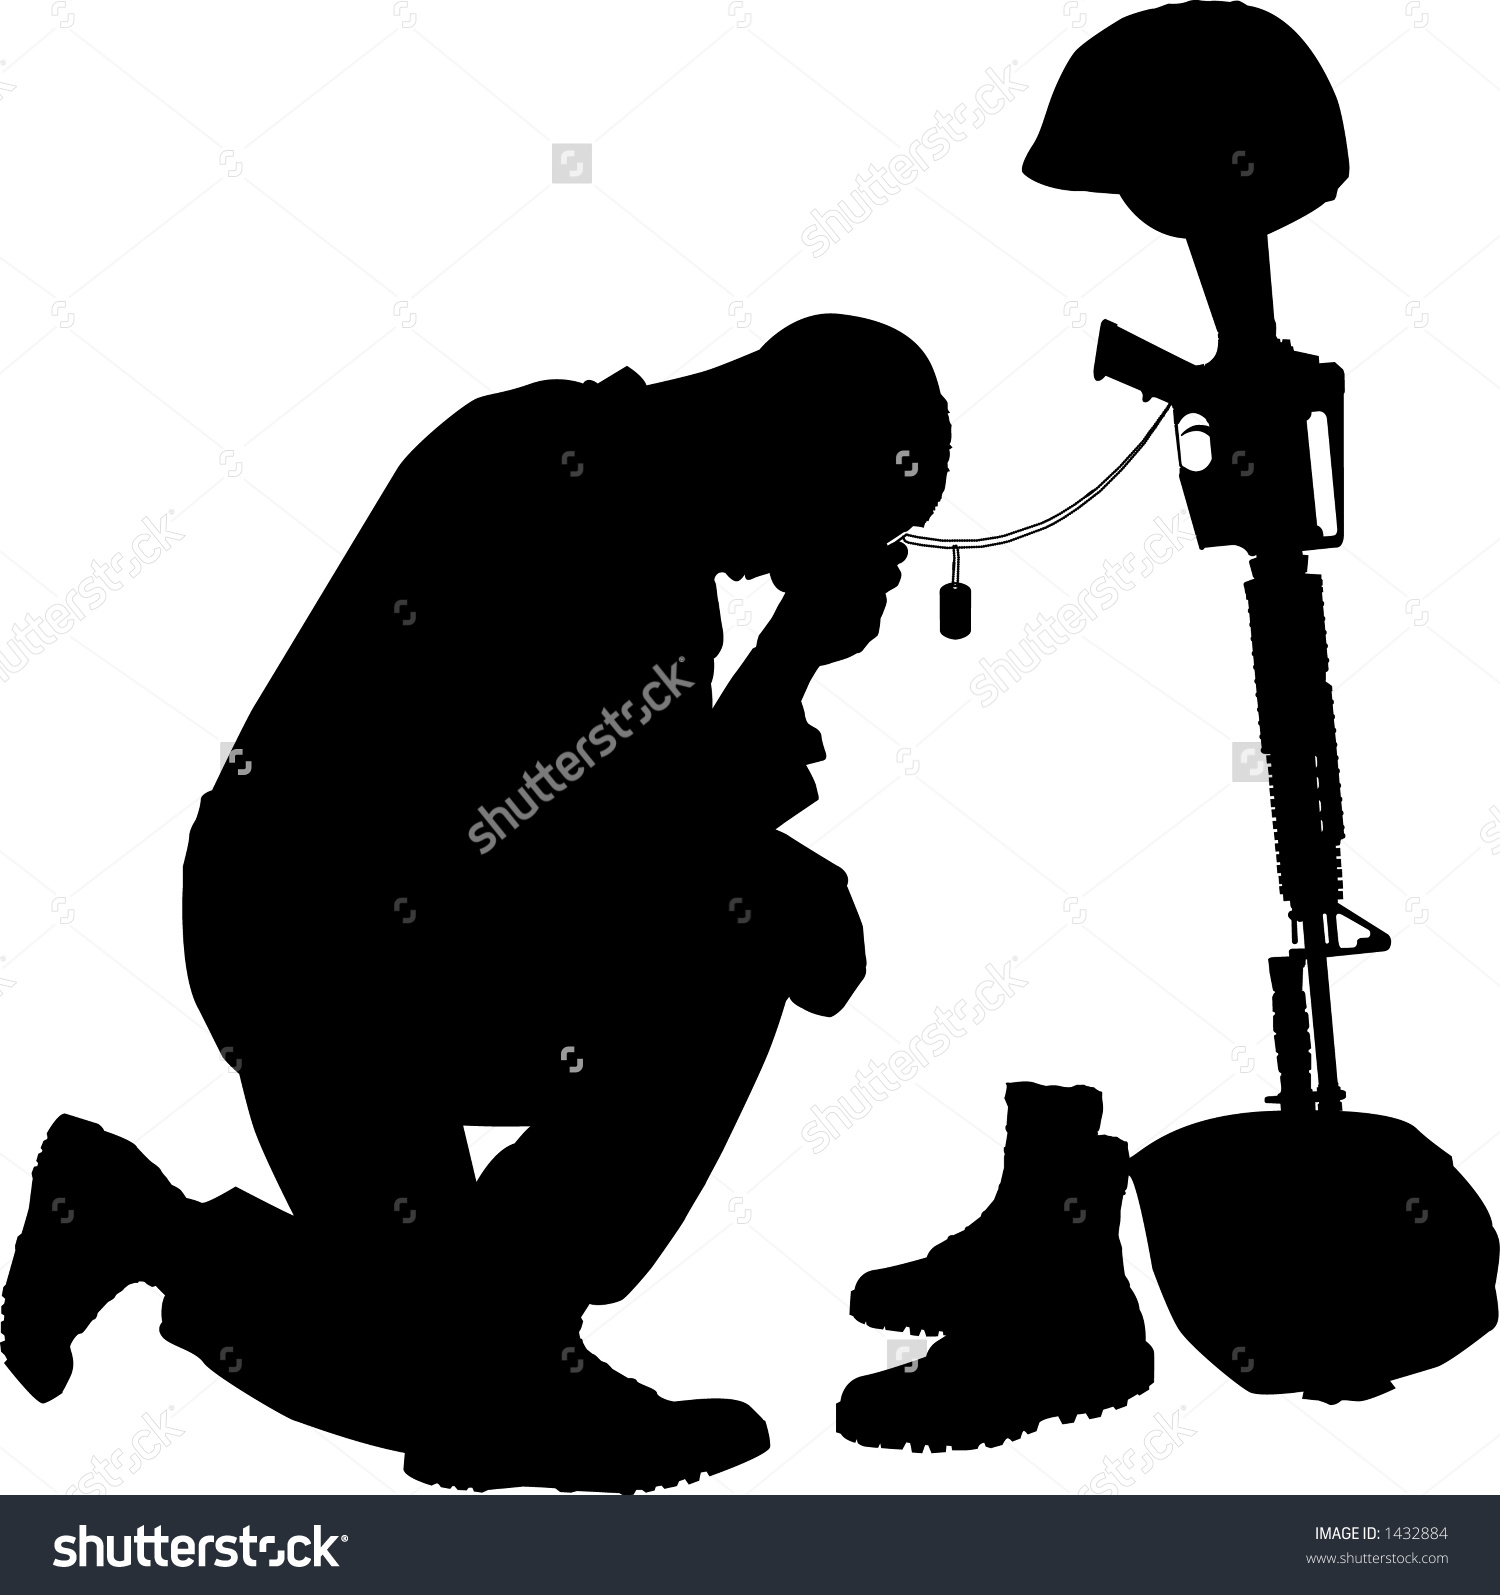 1500x1595 Kneeling Silhouette Clipart Collection